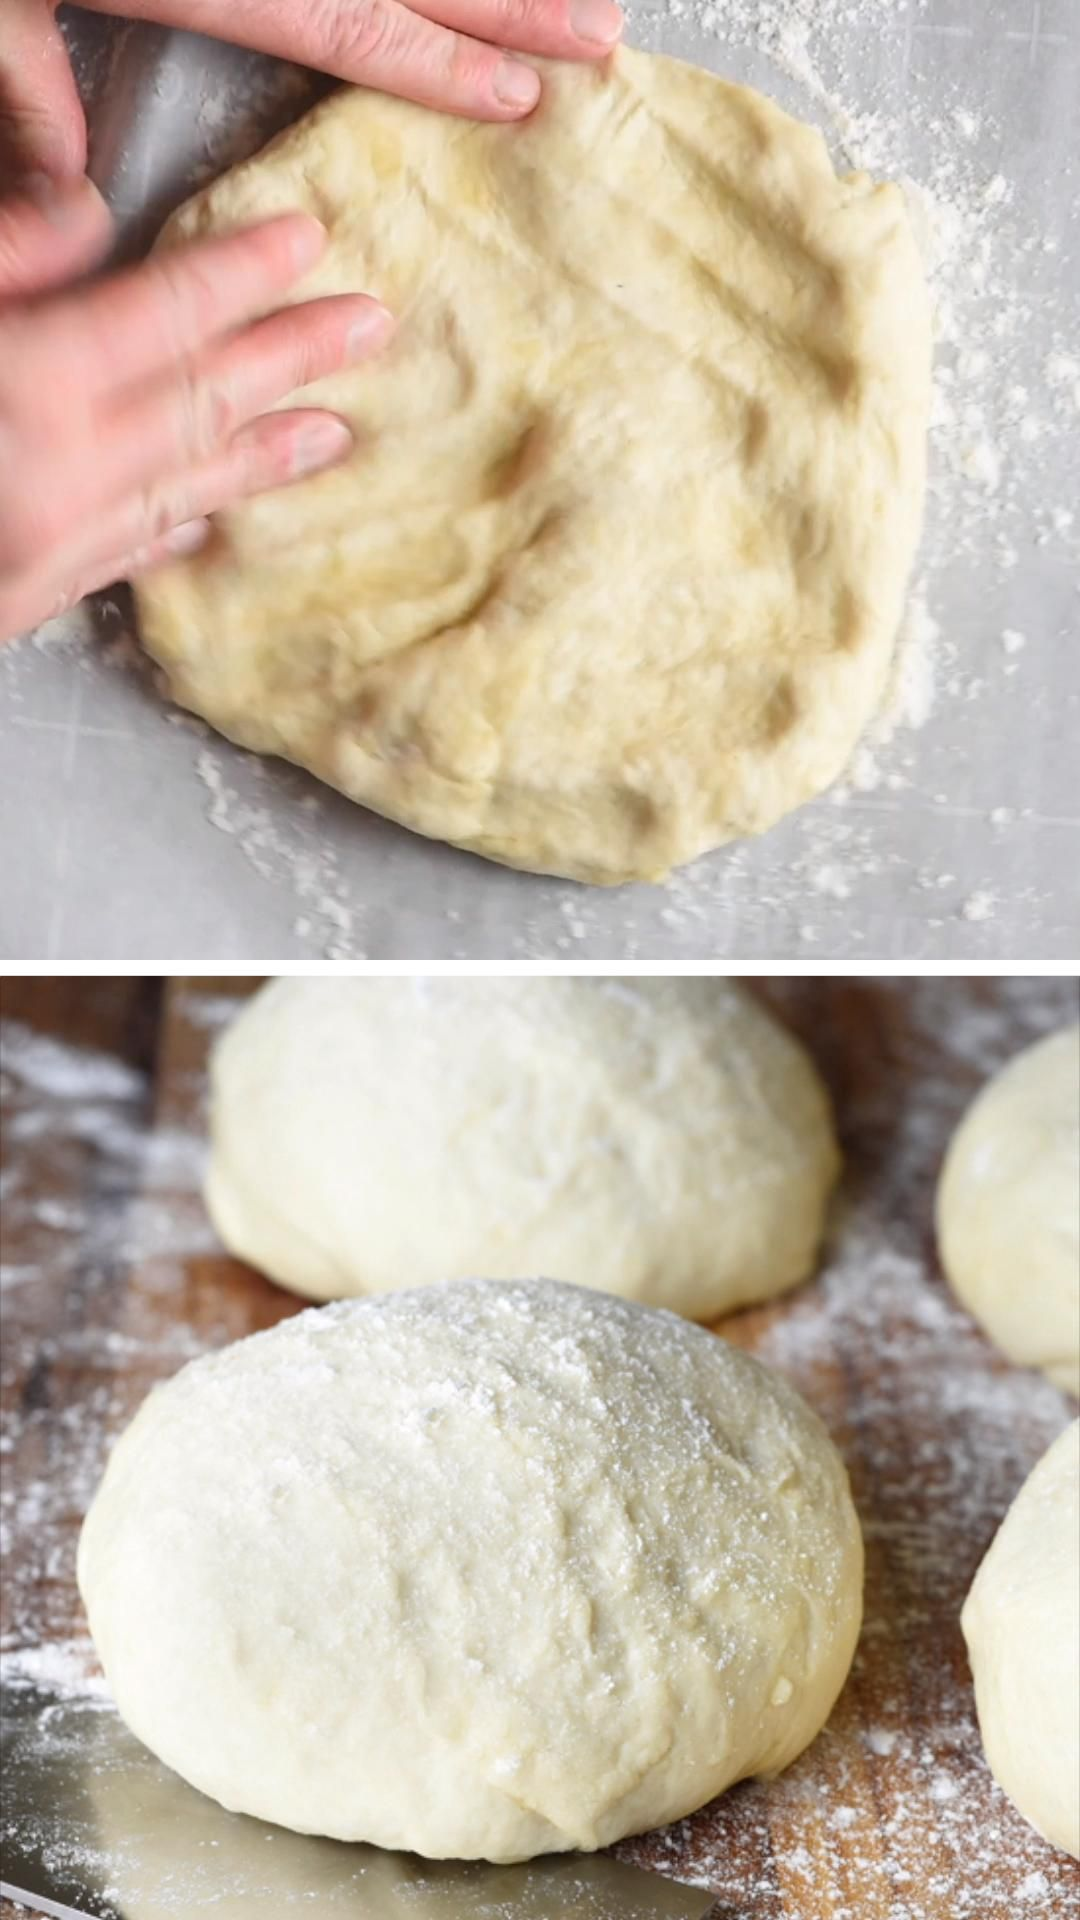 No electric mixer or fancy pizza dough hook needed for this Quick and Easy Pizza Dough. Millions of pins and tons of 5 Star reviews for this recipe. Foolproof homemade pizza crust every time!